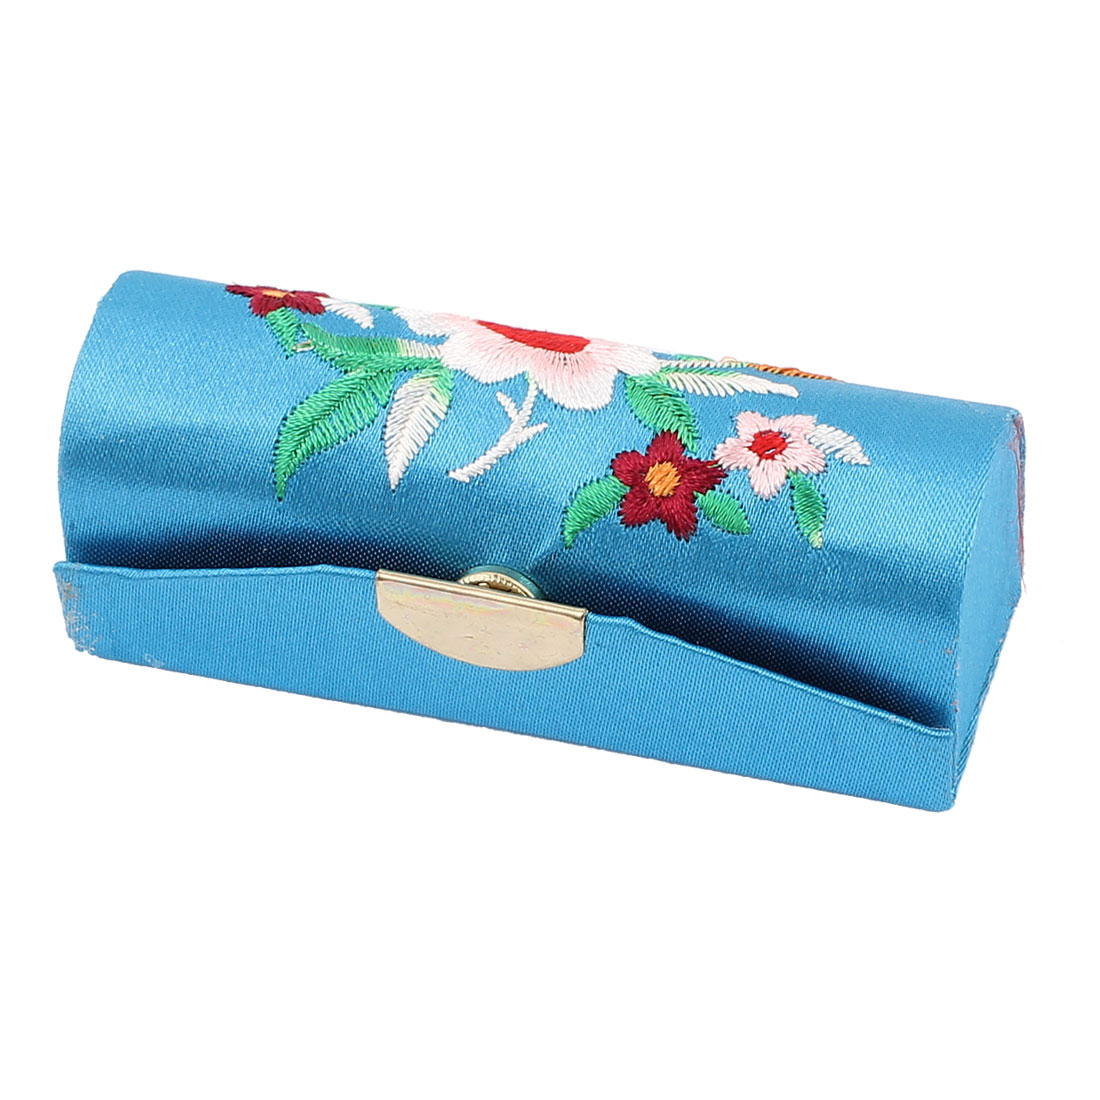 Chinese Style Floral Embroidered Lipstick Lip Chap Stick Case Holder Box Blue